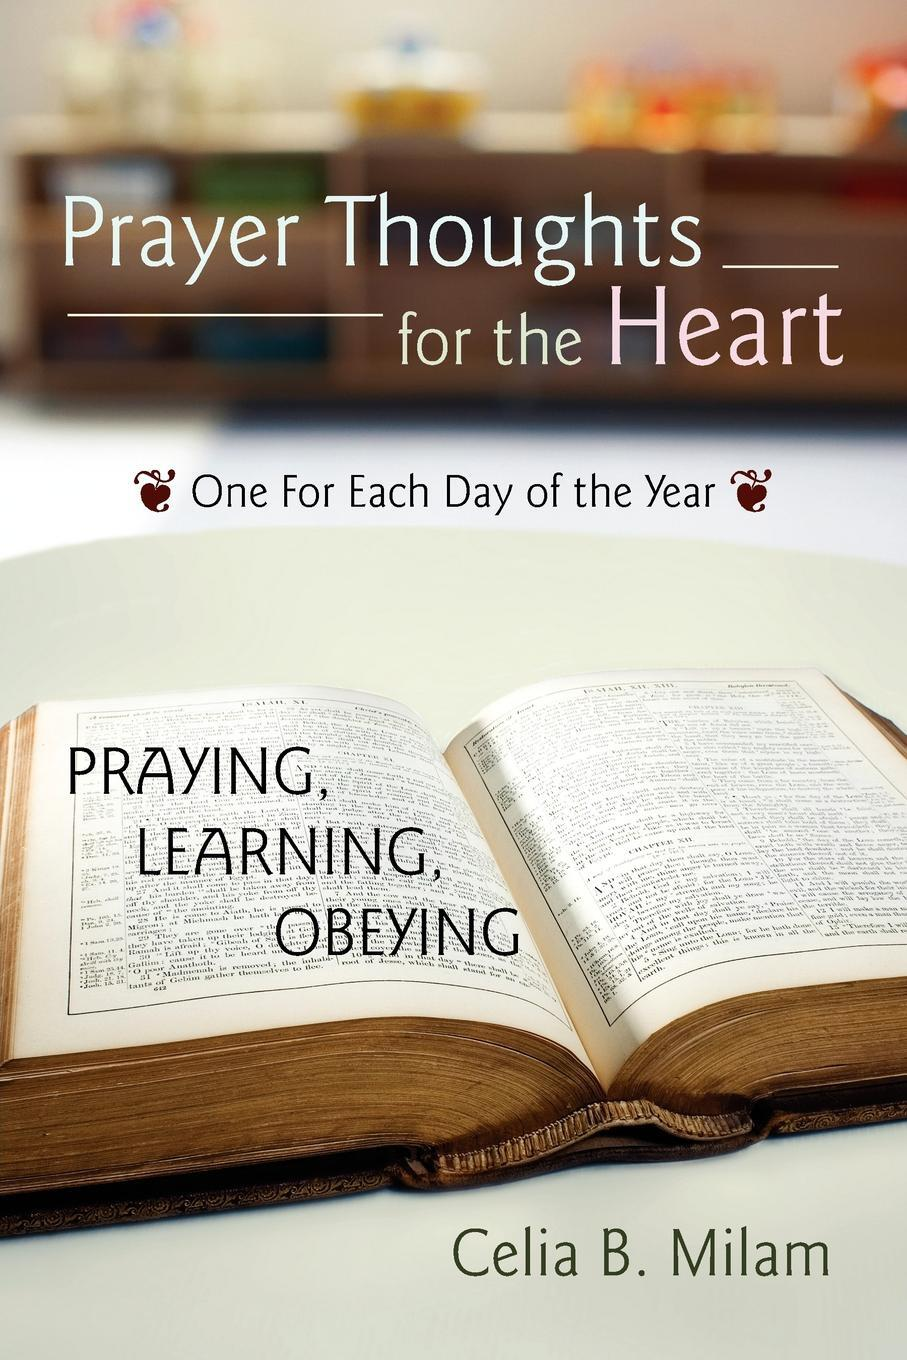 Prayer Thoughts for the Heart. A GUIDE FOR: PRAYING, LEARNING, OBEYING